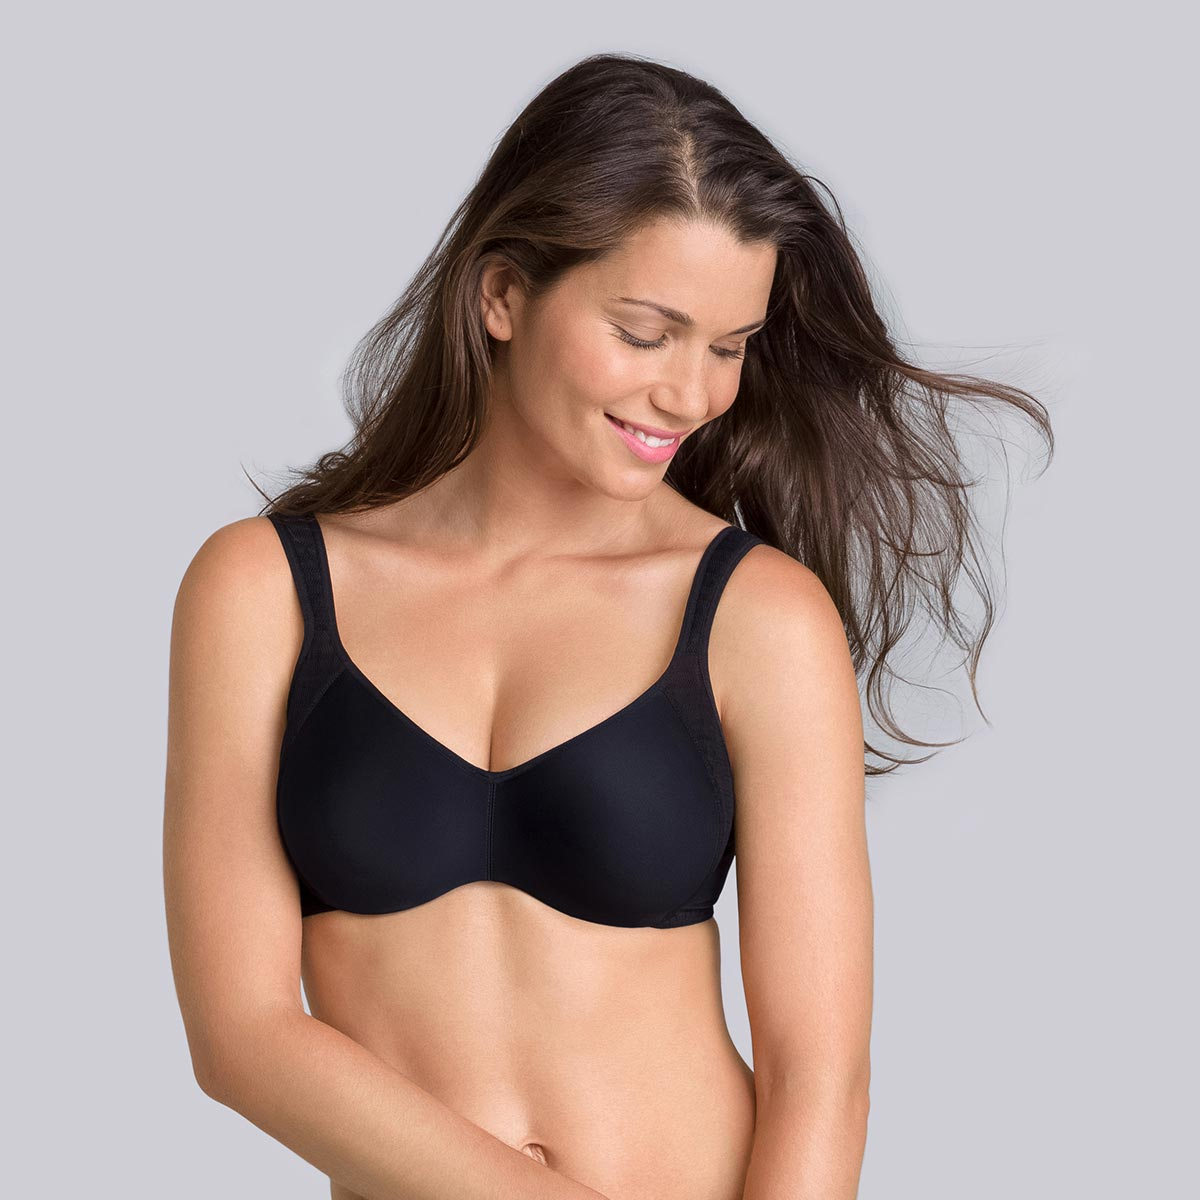 Underwired bra in black - Expert in Silhouette, , PLAYTEX